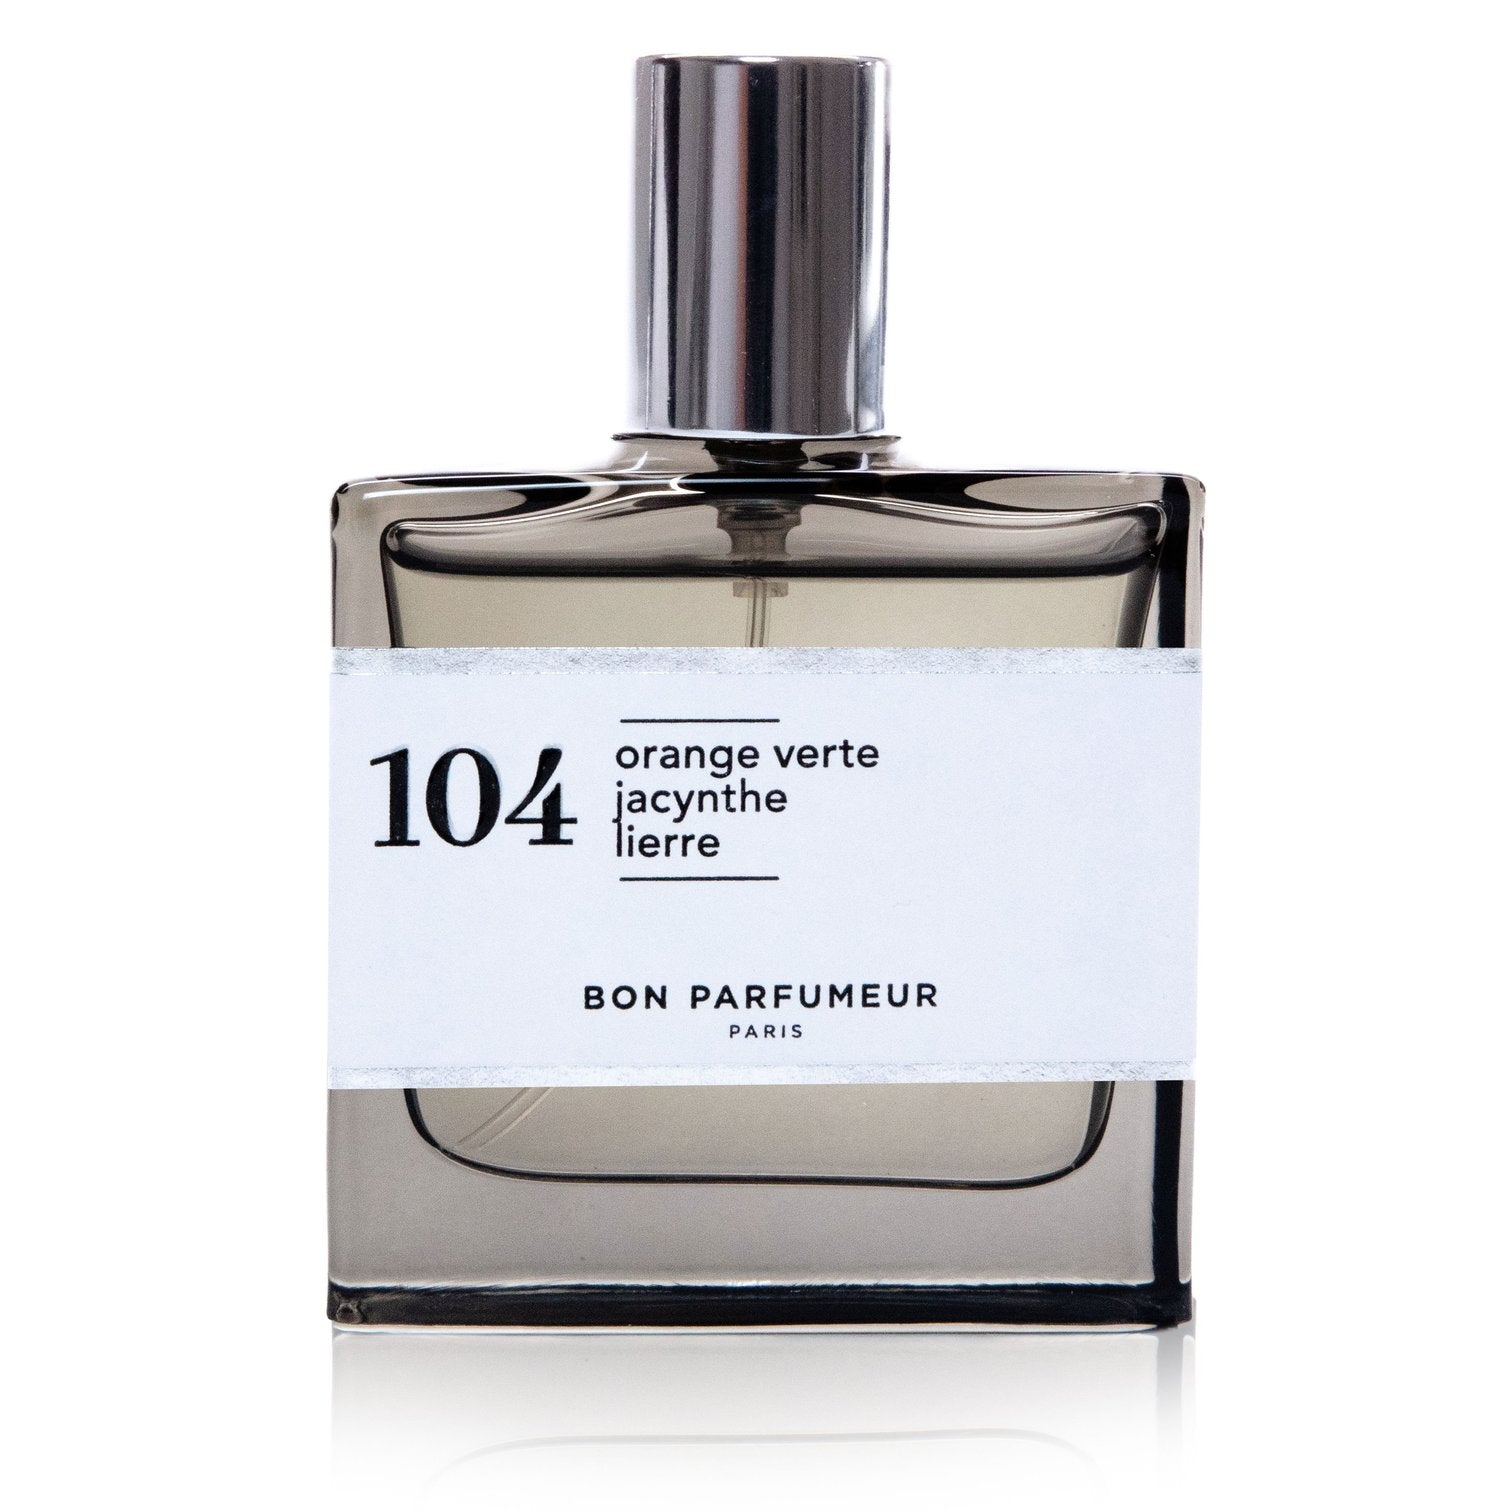 Eau de parfum 104: green orange, hyacinth and ivy